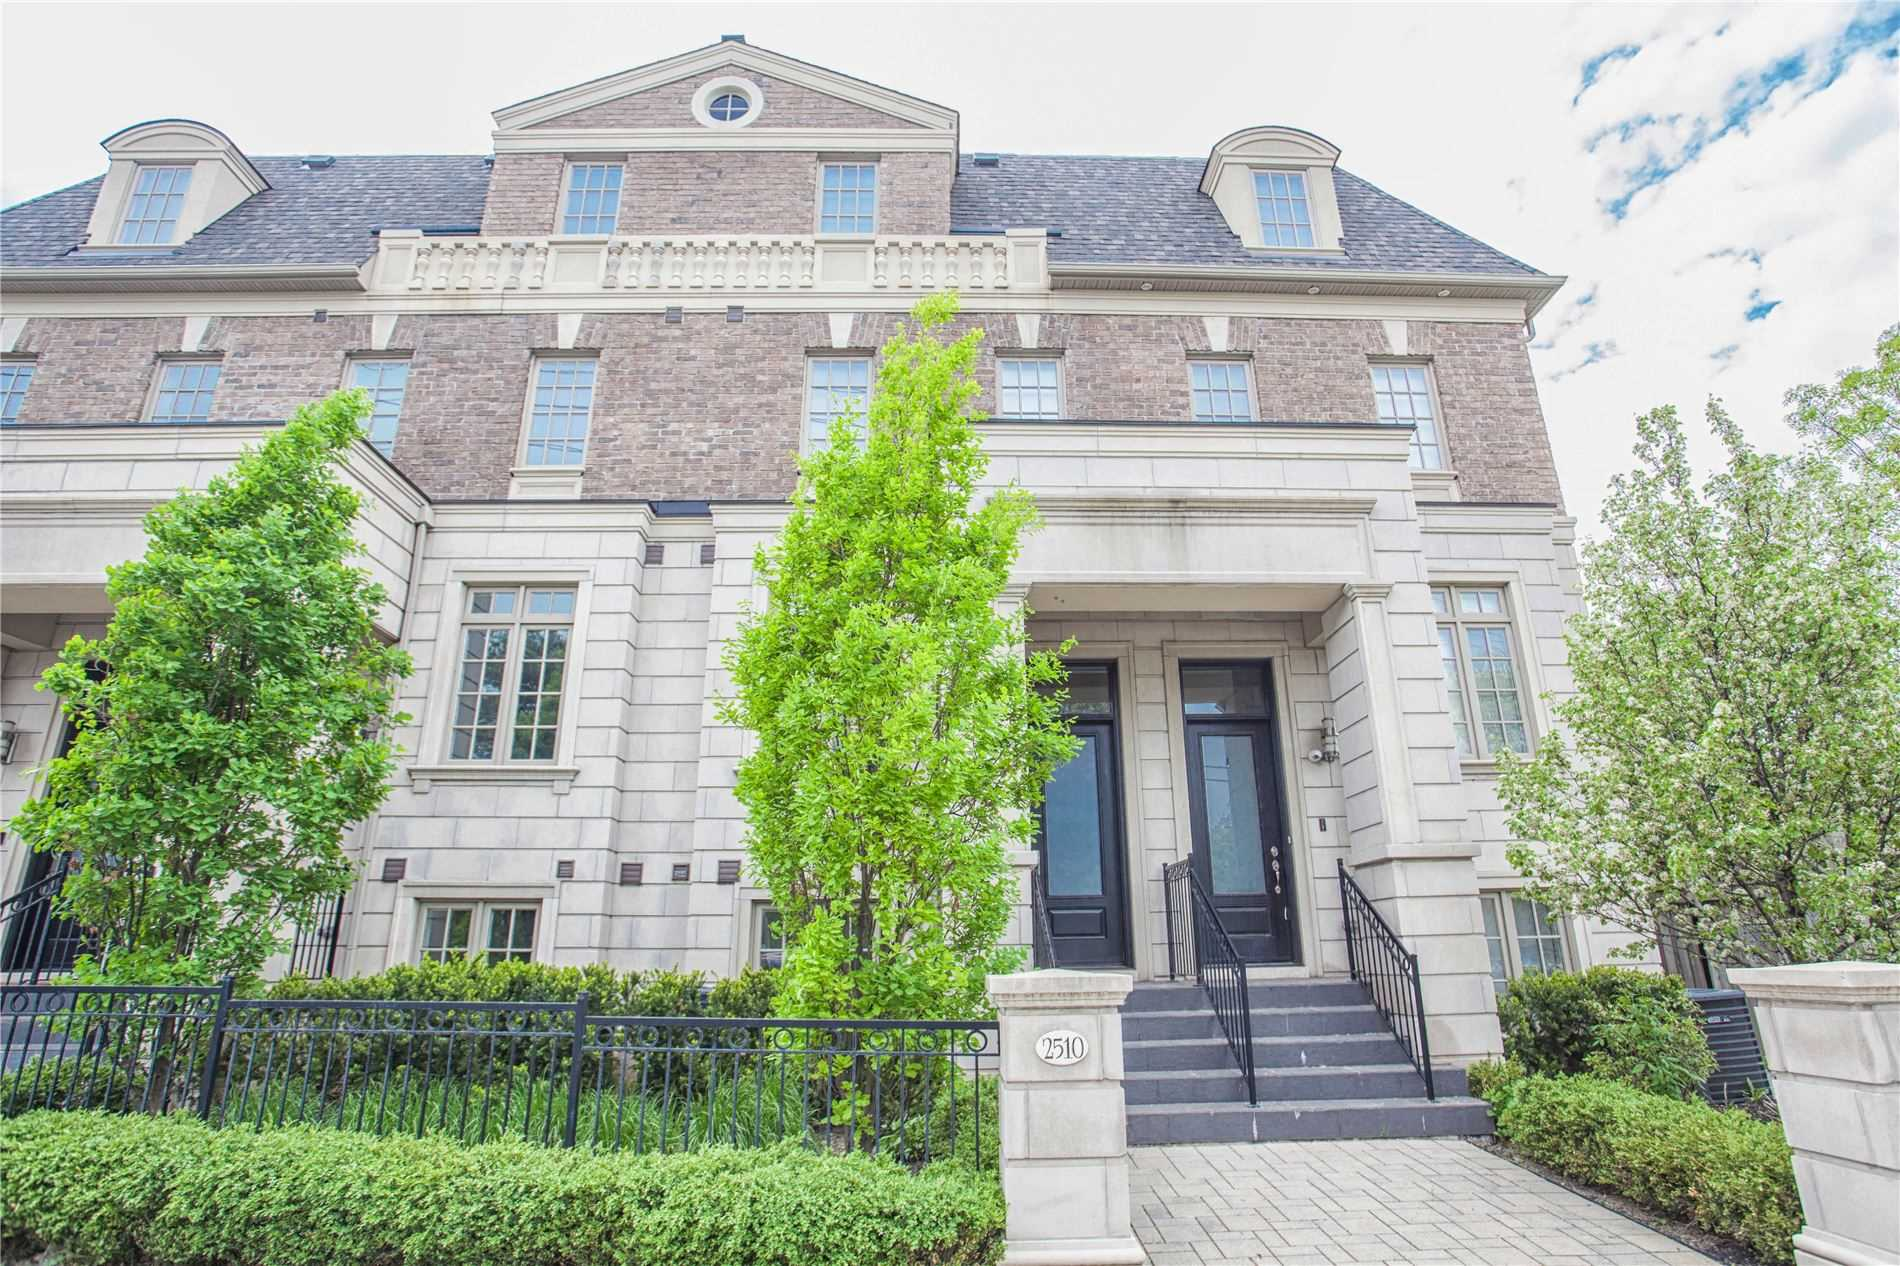 2510 Bayview Ave, Toronto, Ontario M2L1A9, 4 Bedrooms Bedrooms, 10 Rooms Rooms,5 BathroomsBathrooms,Att/Row/Twnhouse,For Sale,Bayview,C4773635